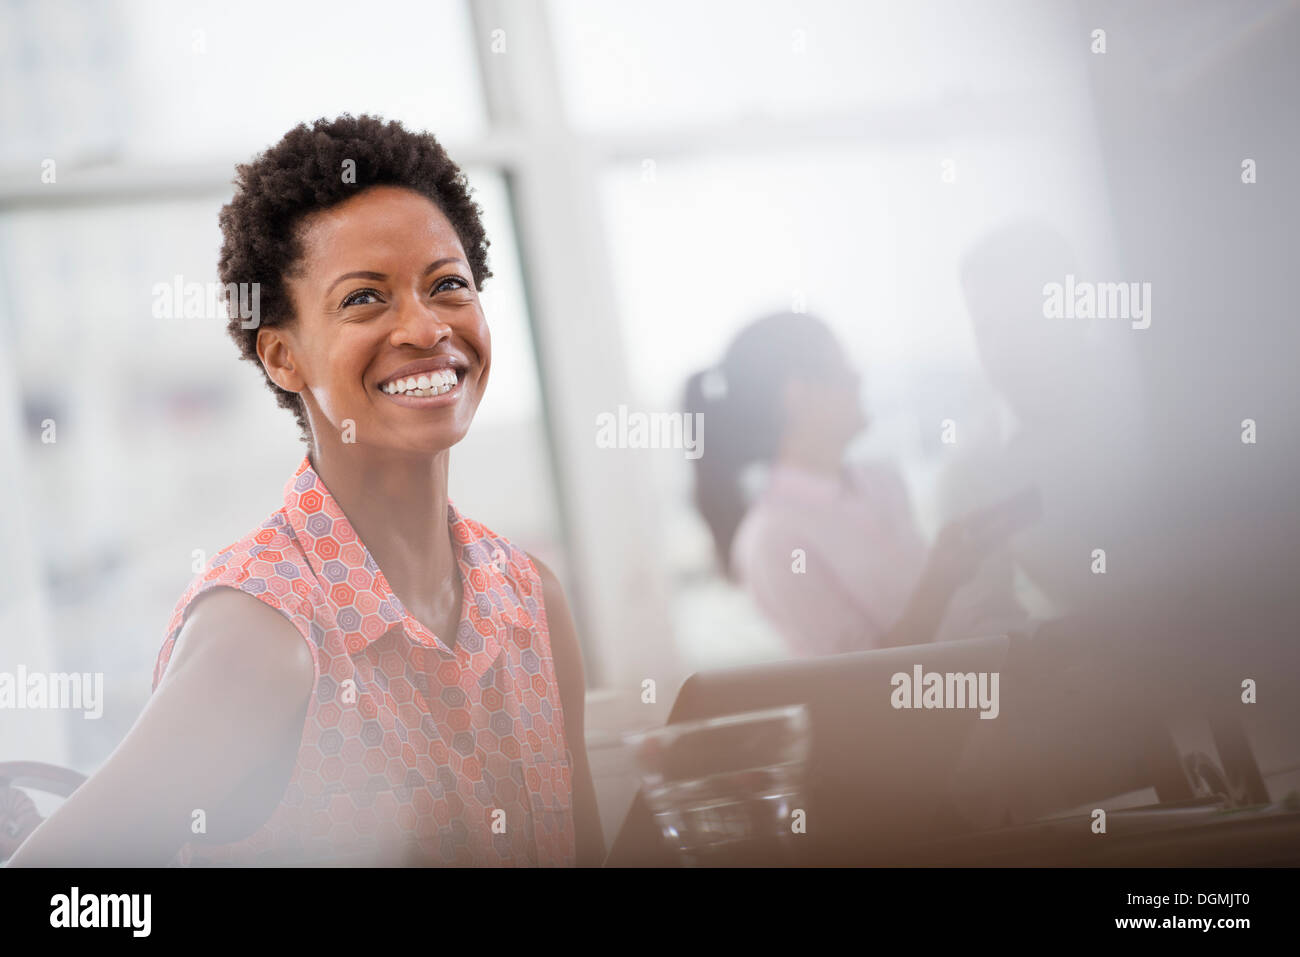 Office life. A young woman in a pink shirt laughing. - Stock Image